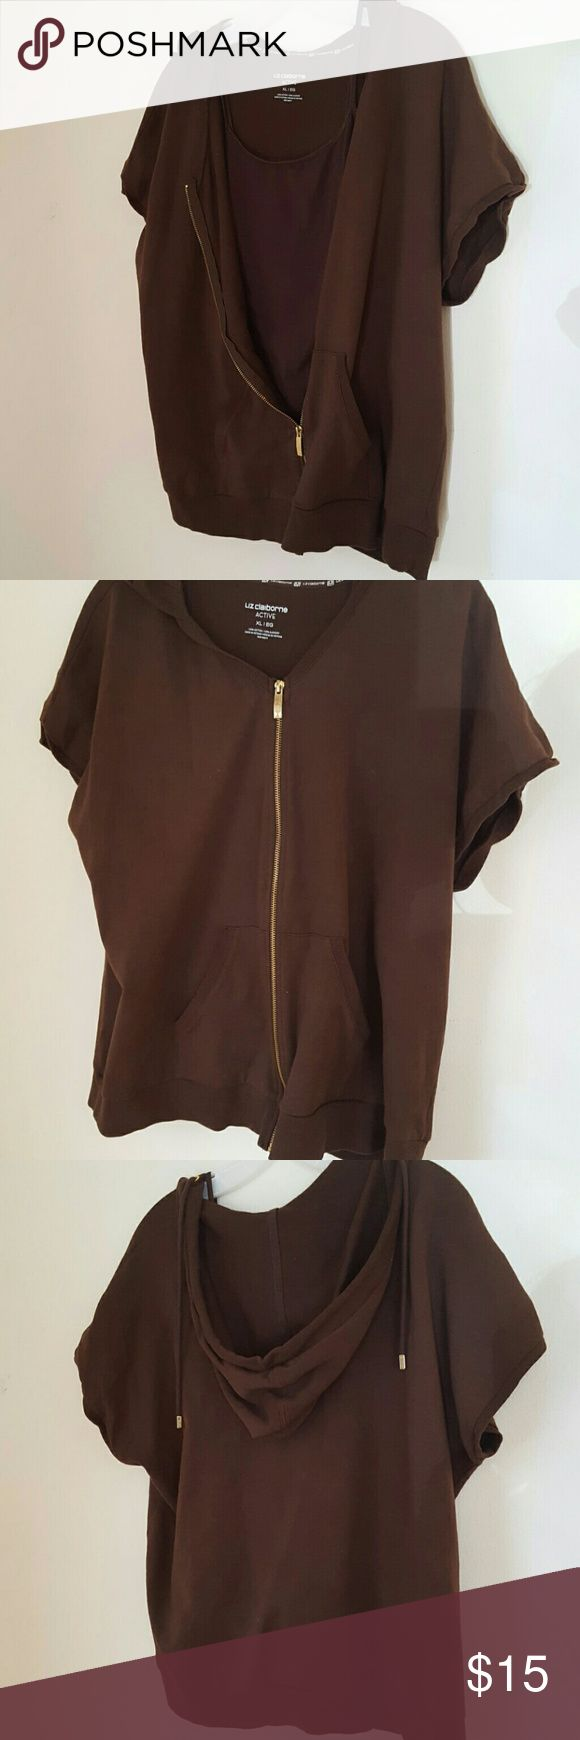 Brown short sleeved zip up shirt with hood Brown short sleeved zip up shirt with hood. Like brand new. Comes with free SMALL brown cami Liz Claiborne Tops